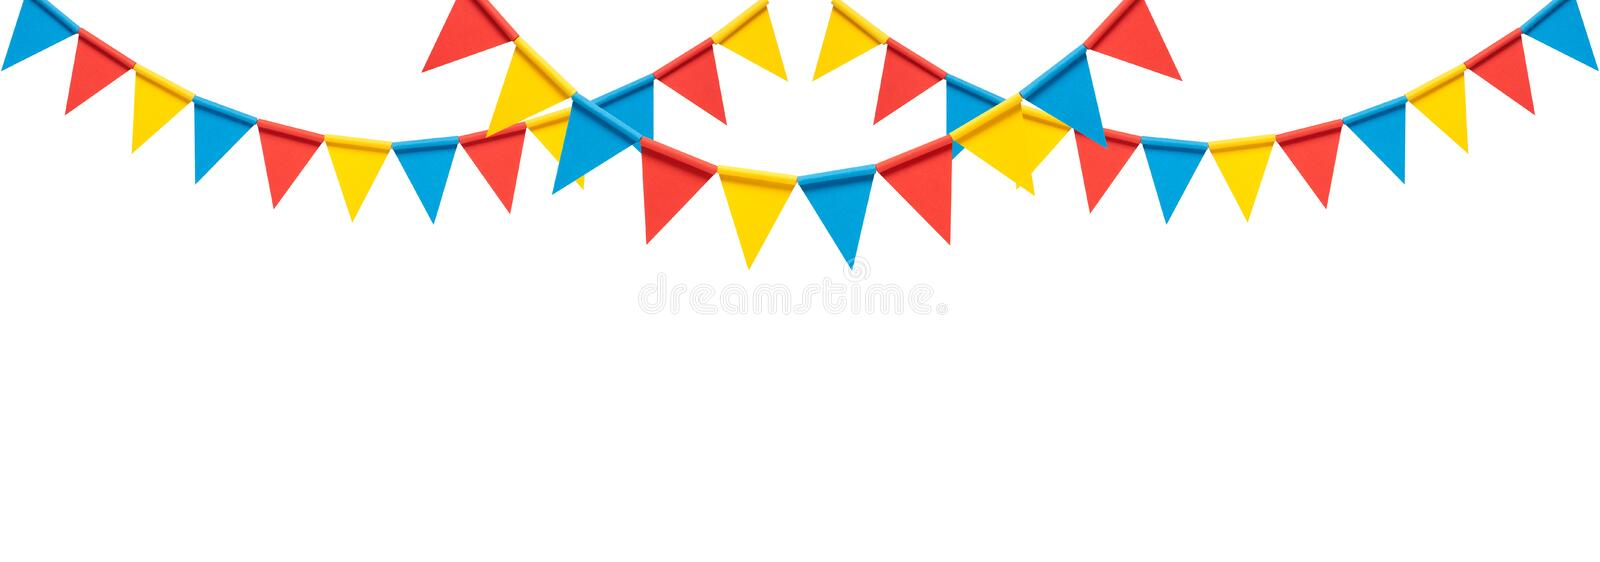 Colorful bunting party flags on white background. Colorful paper bunting party flags on white background vector illustration